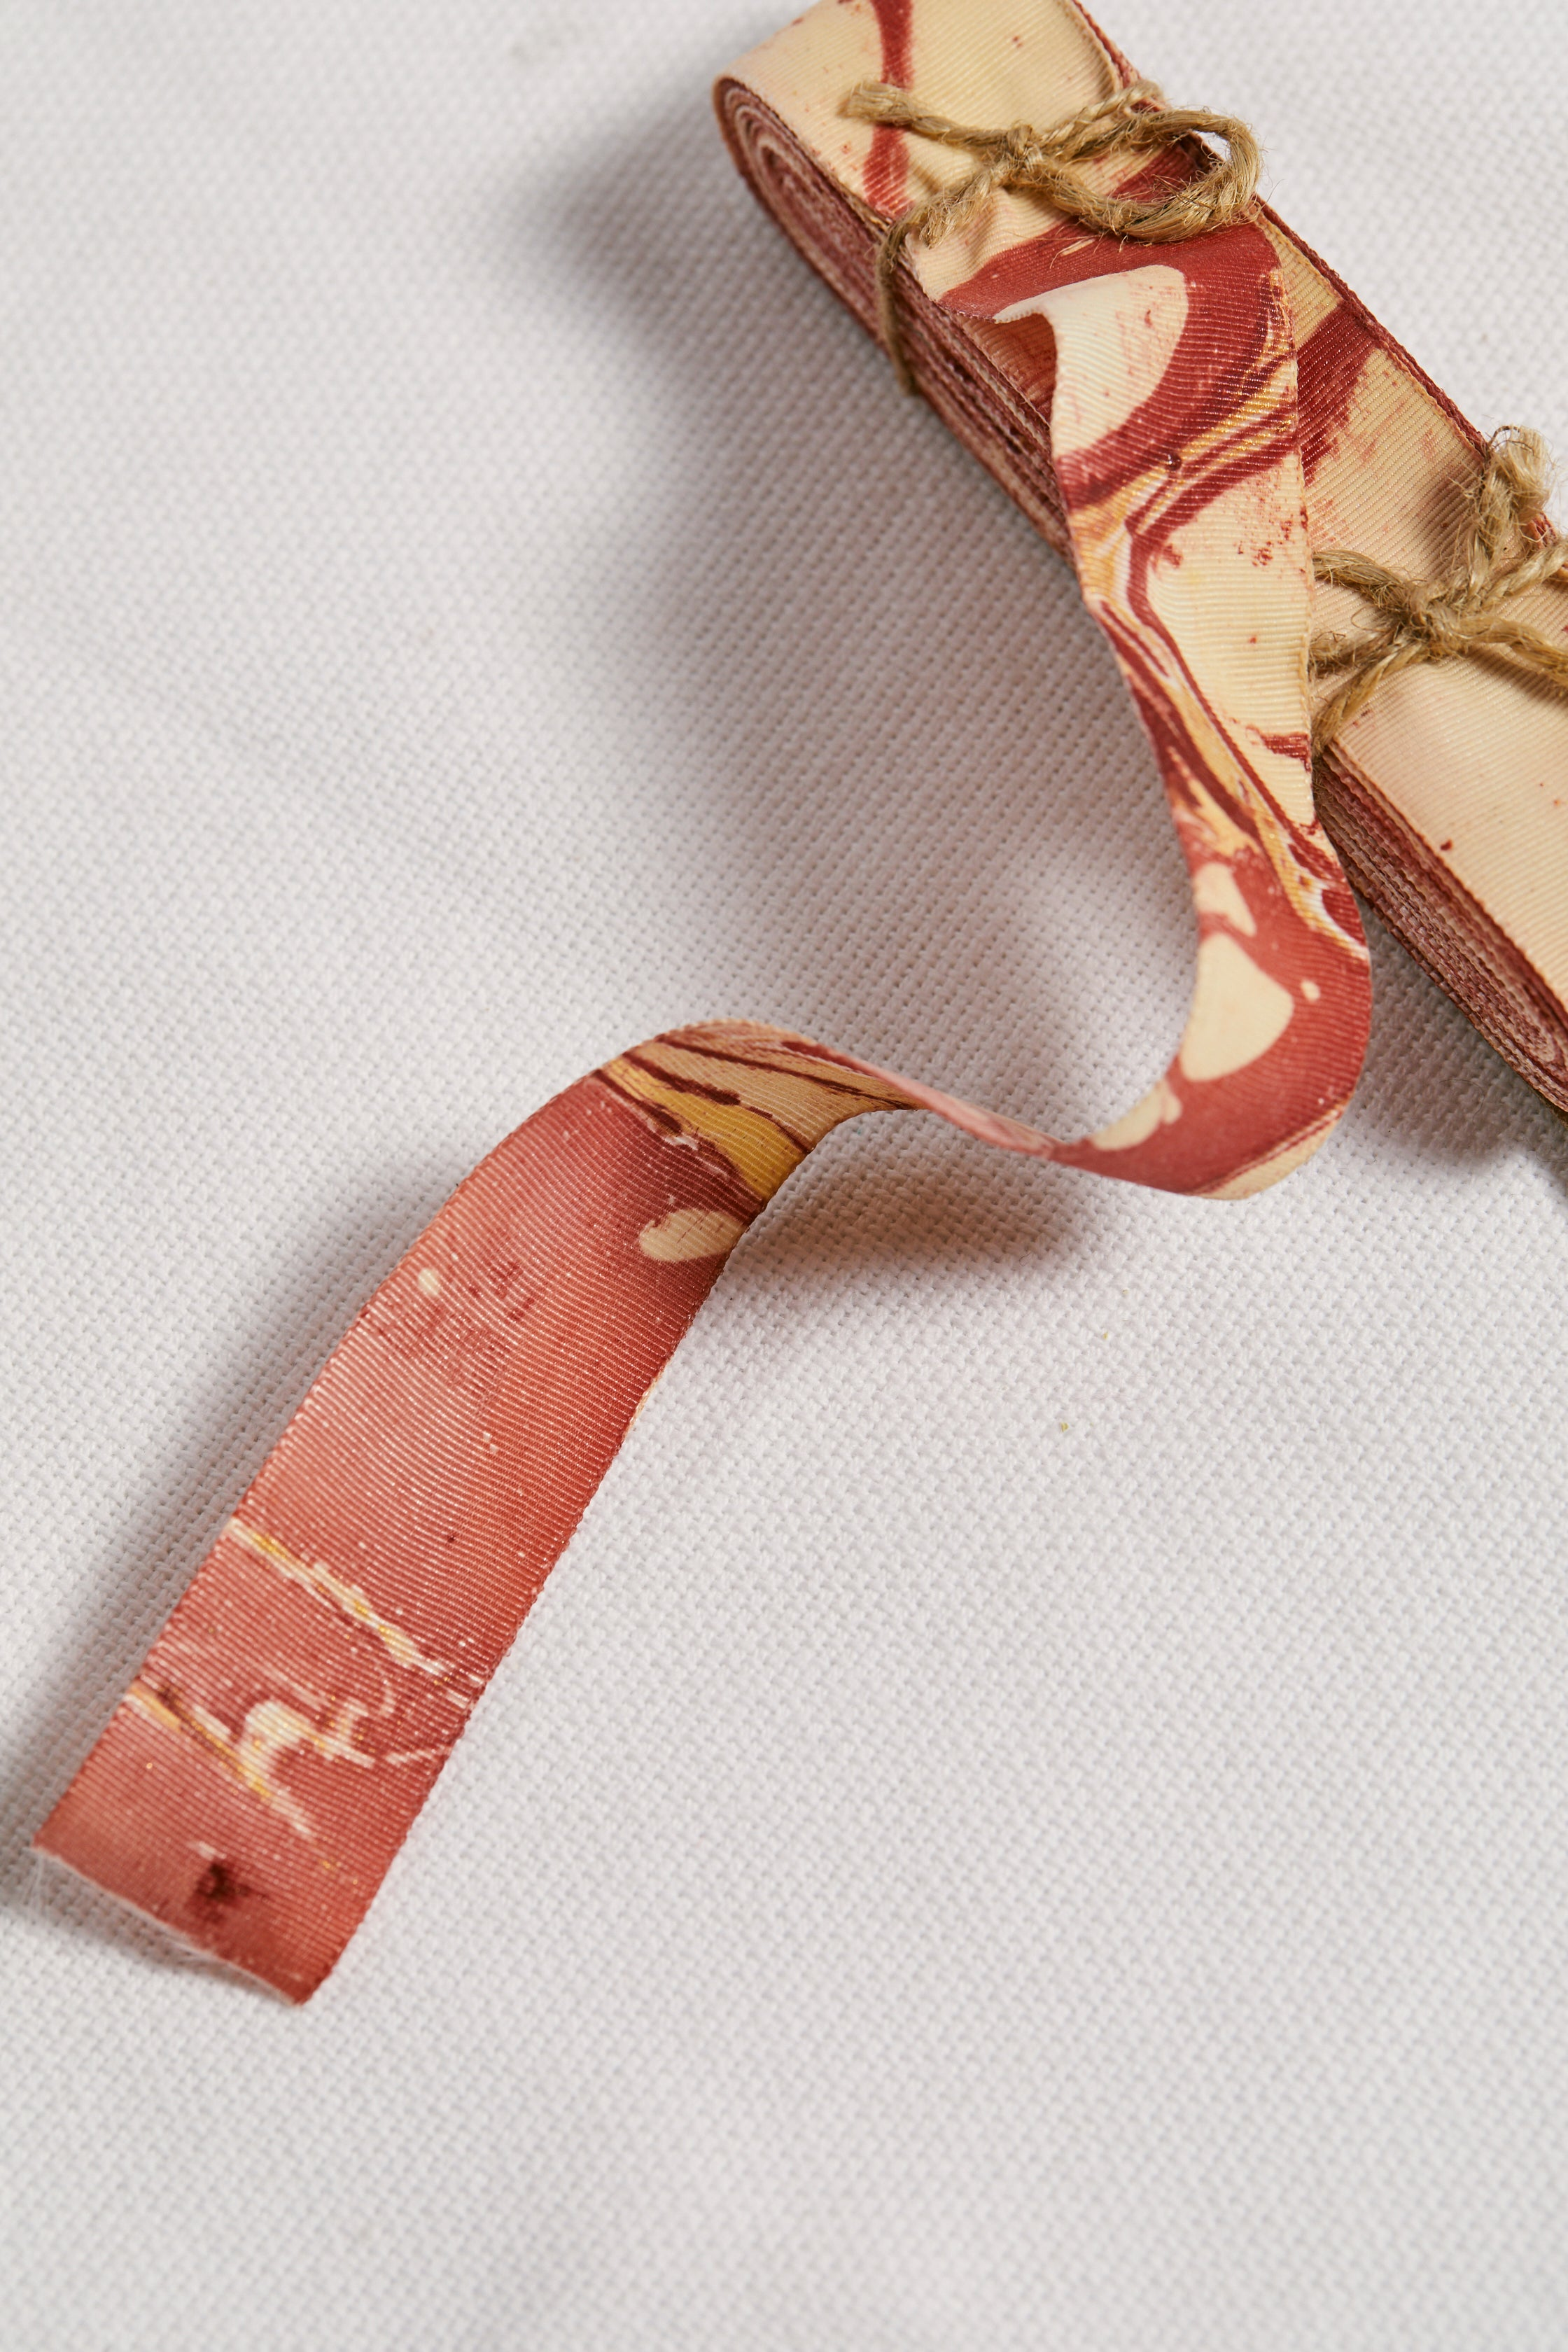 Red Marbleized Grosgrain Ribbon - picnic-sf